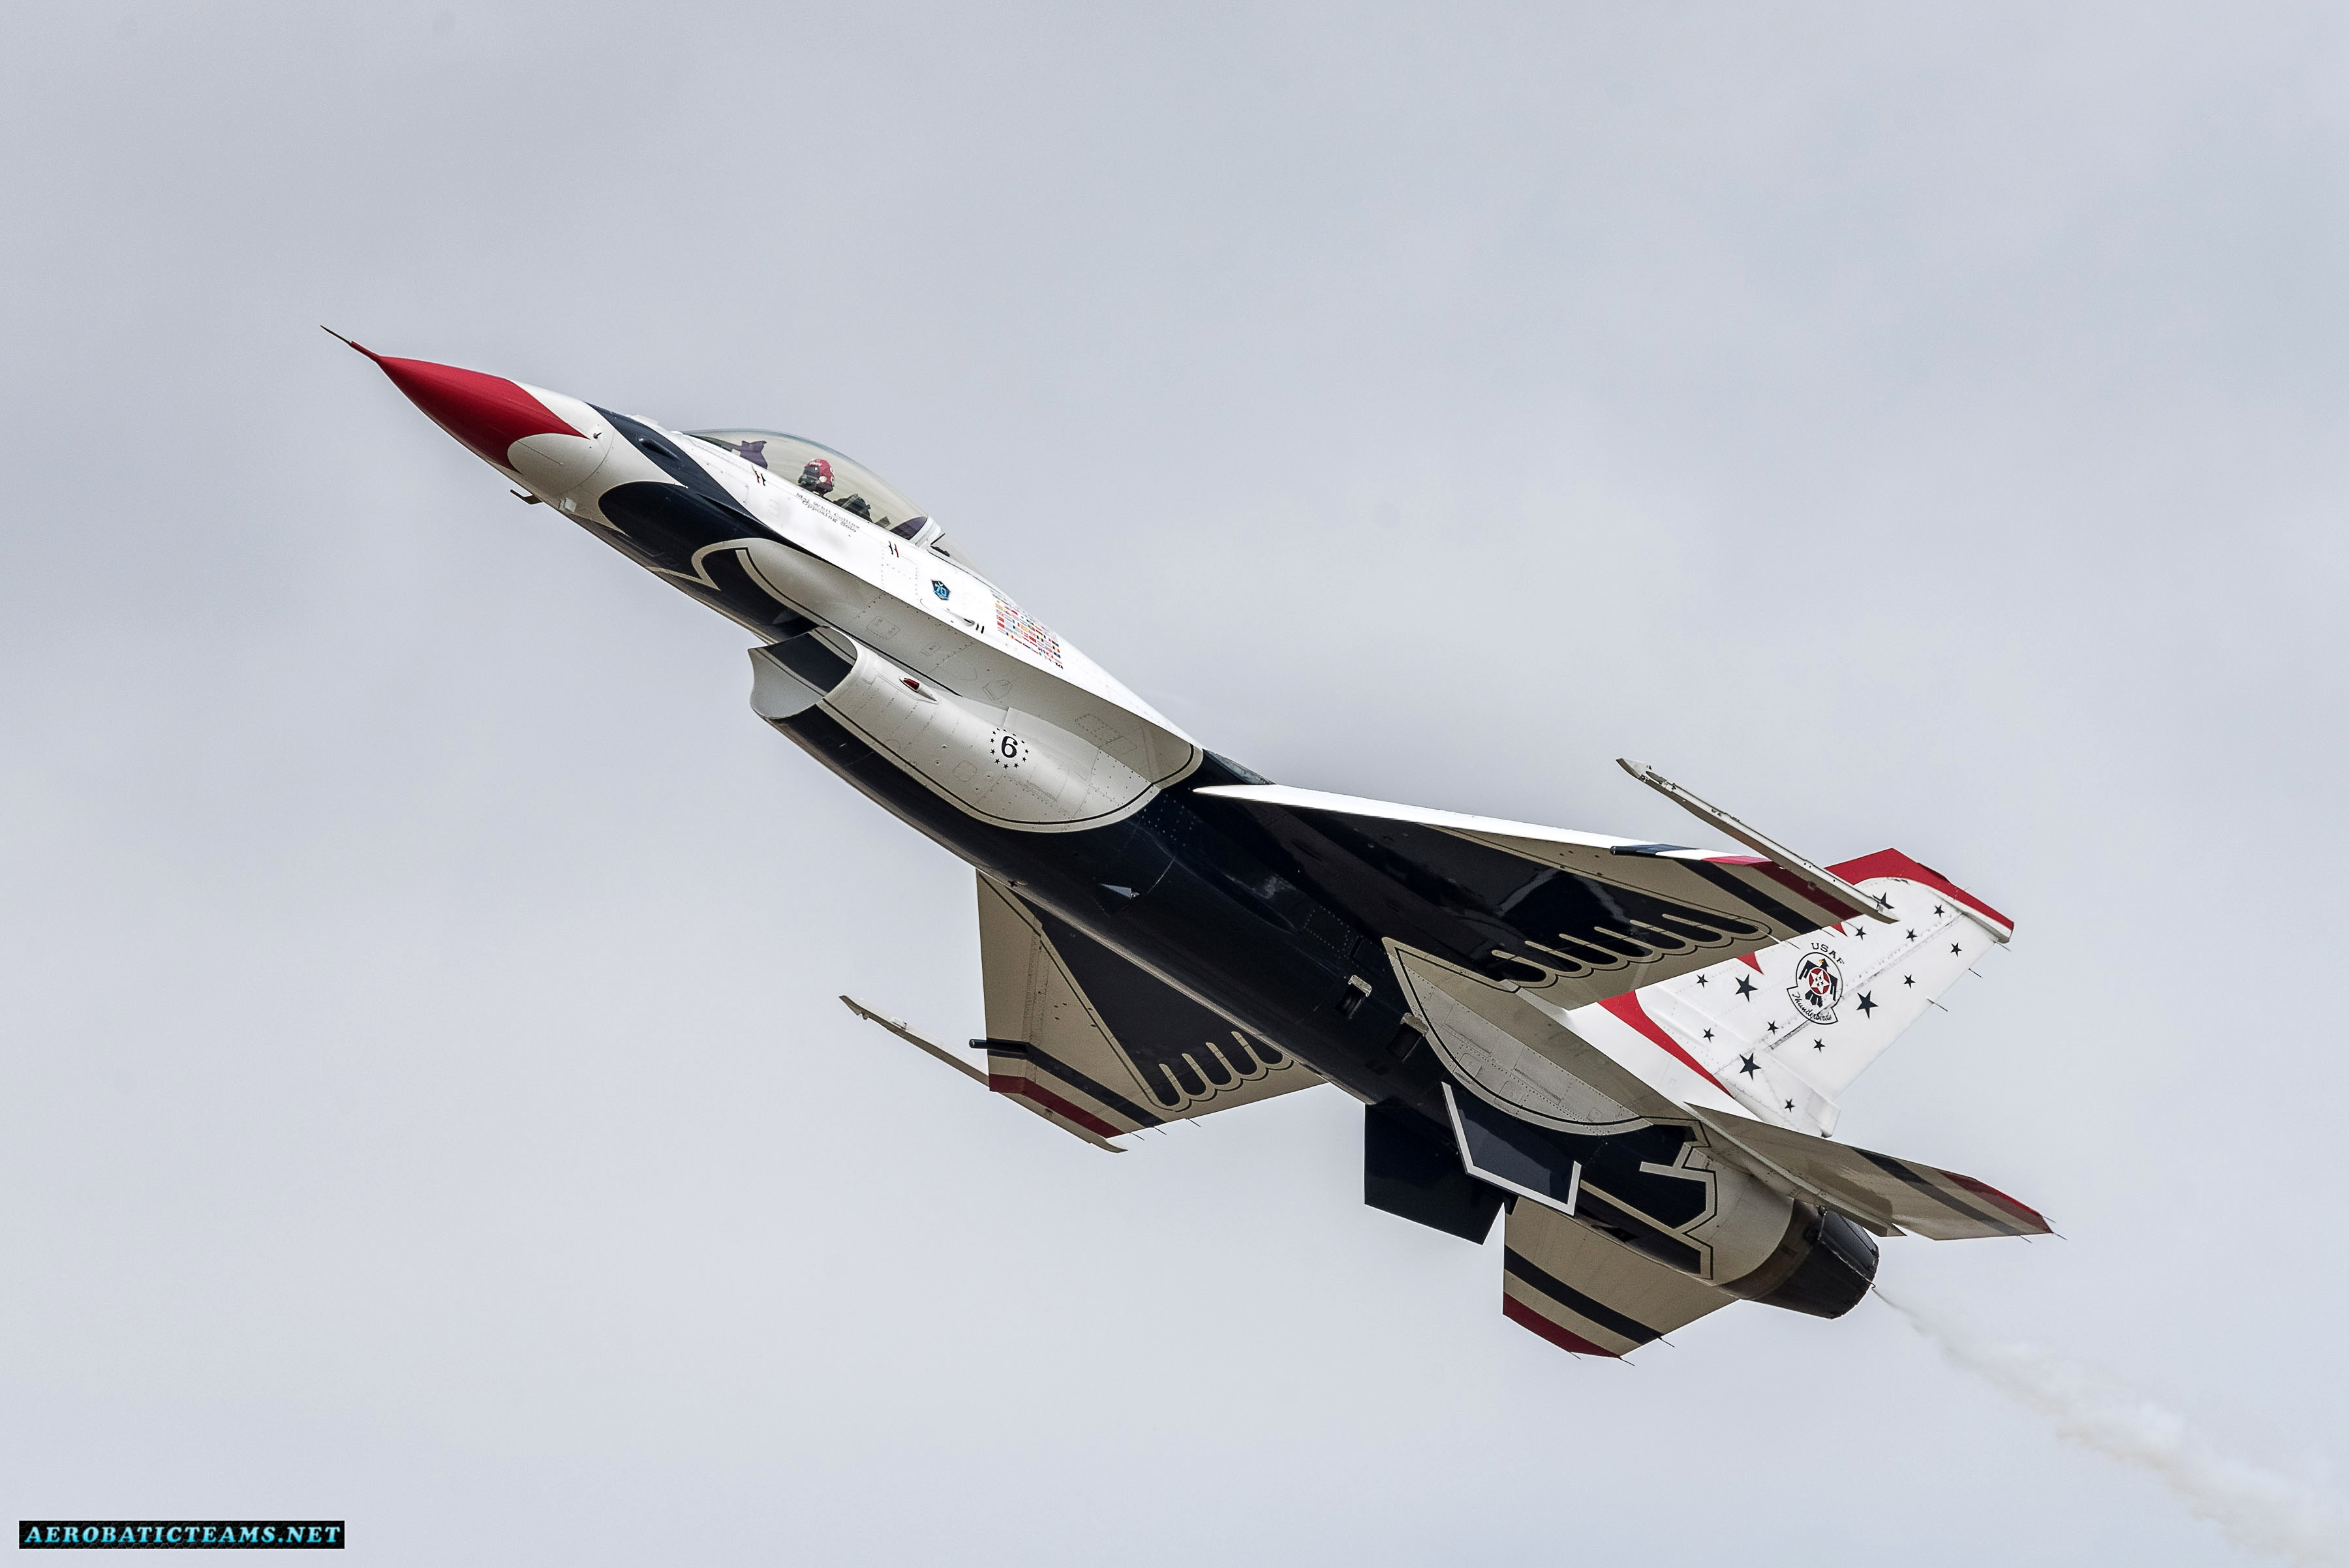 Thunderbirds resume practice flights after the fatal crash